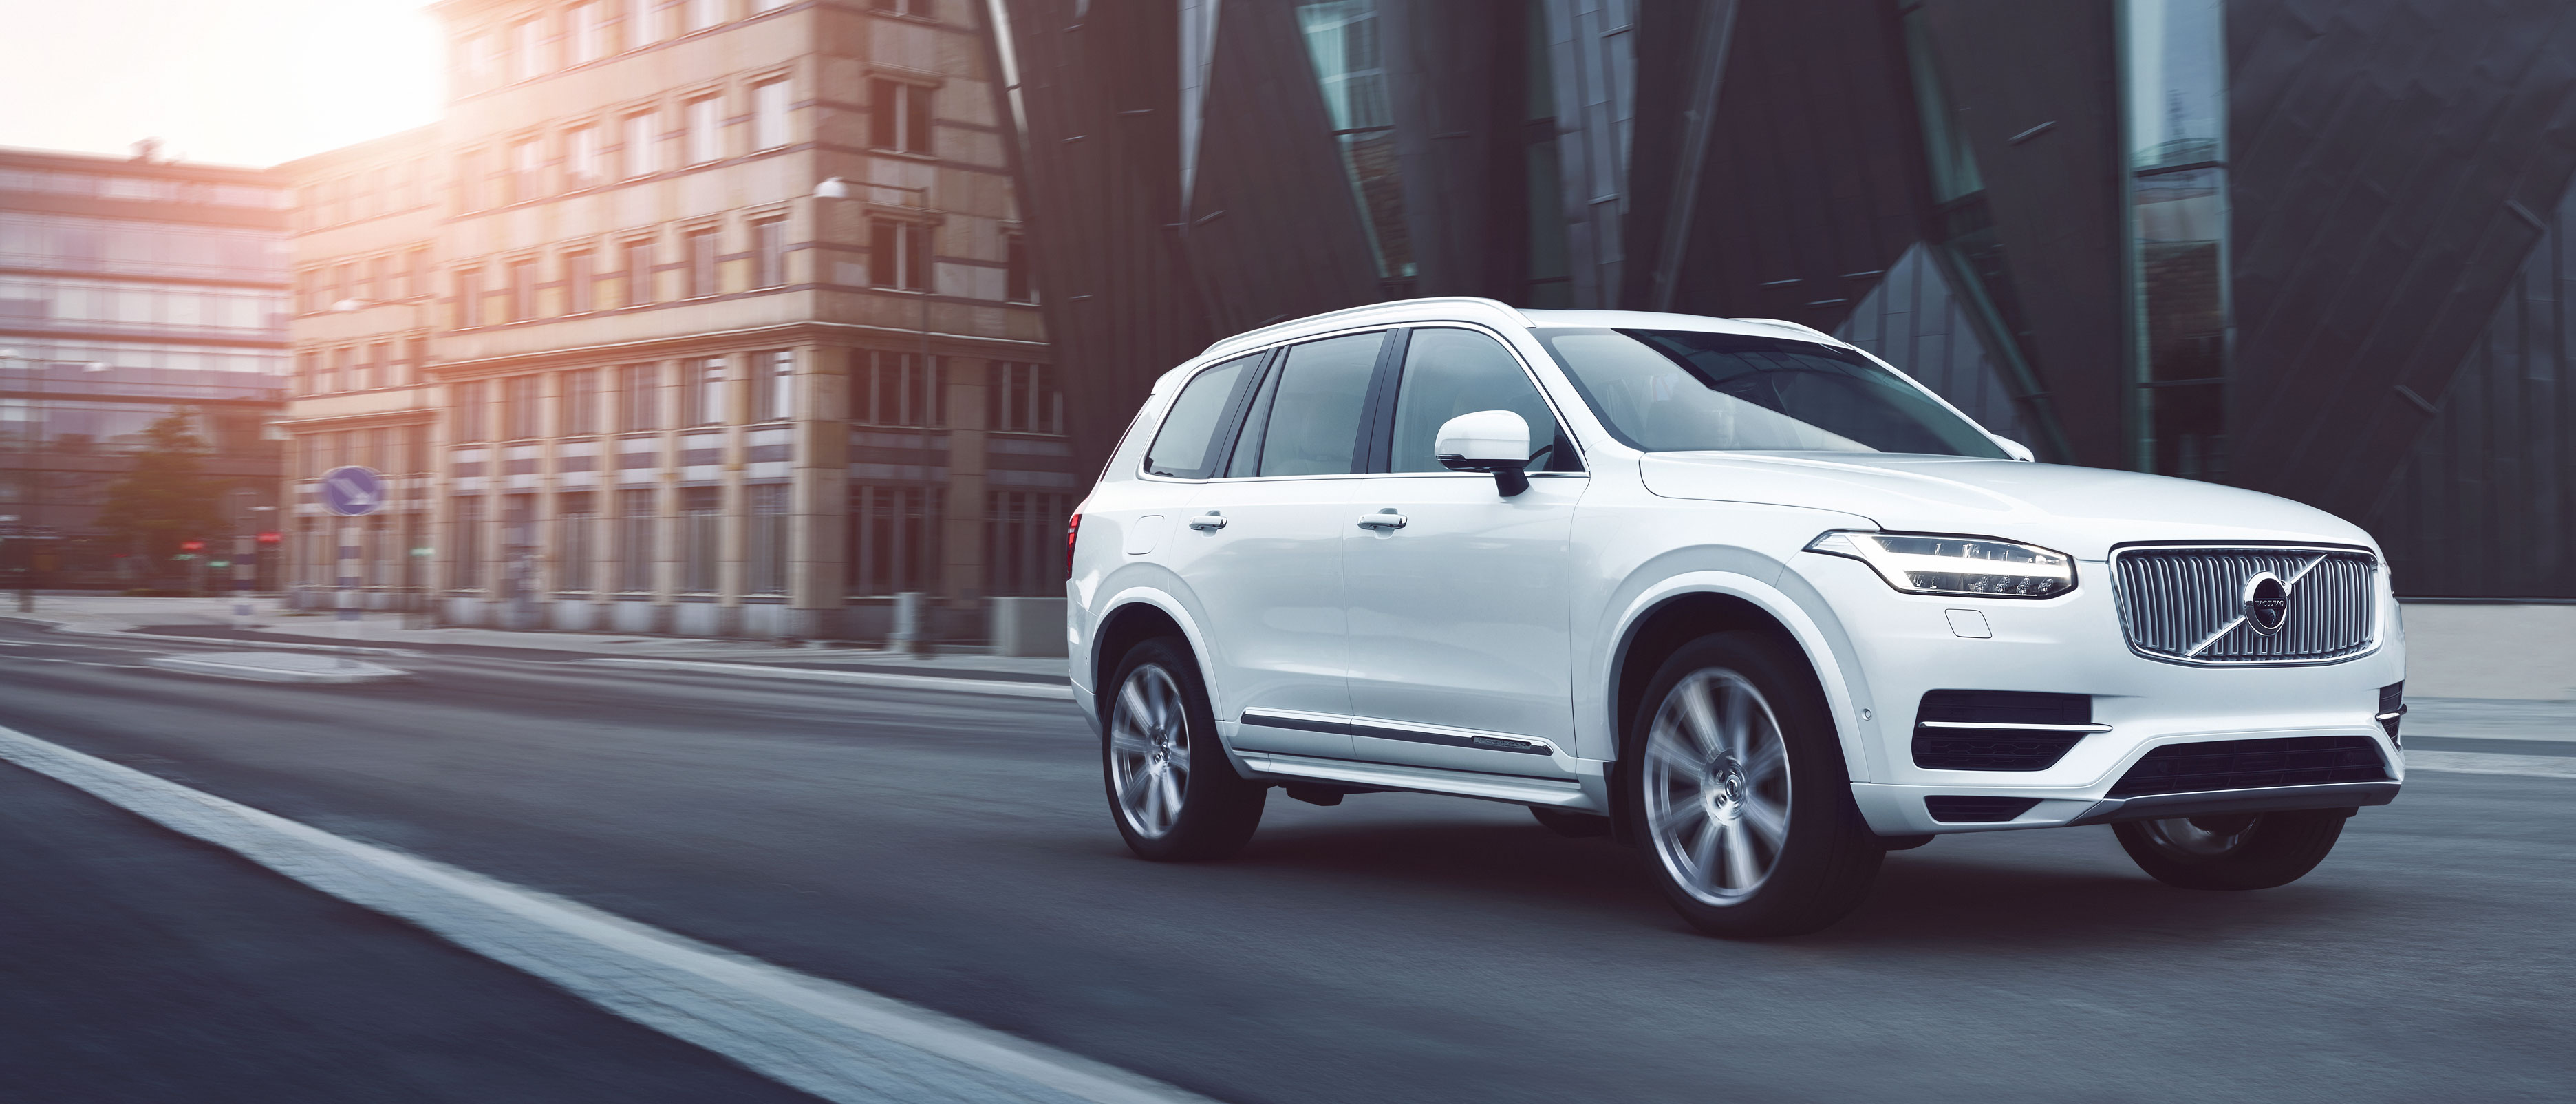 The Volvo XC90 driving down a city road